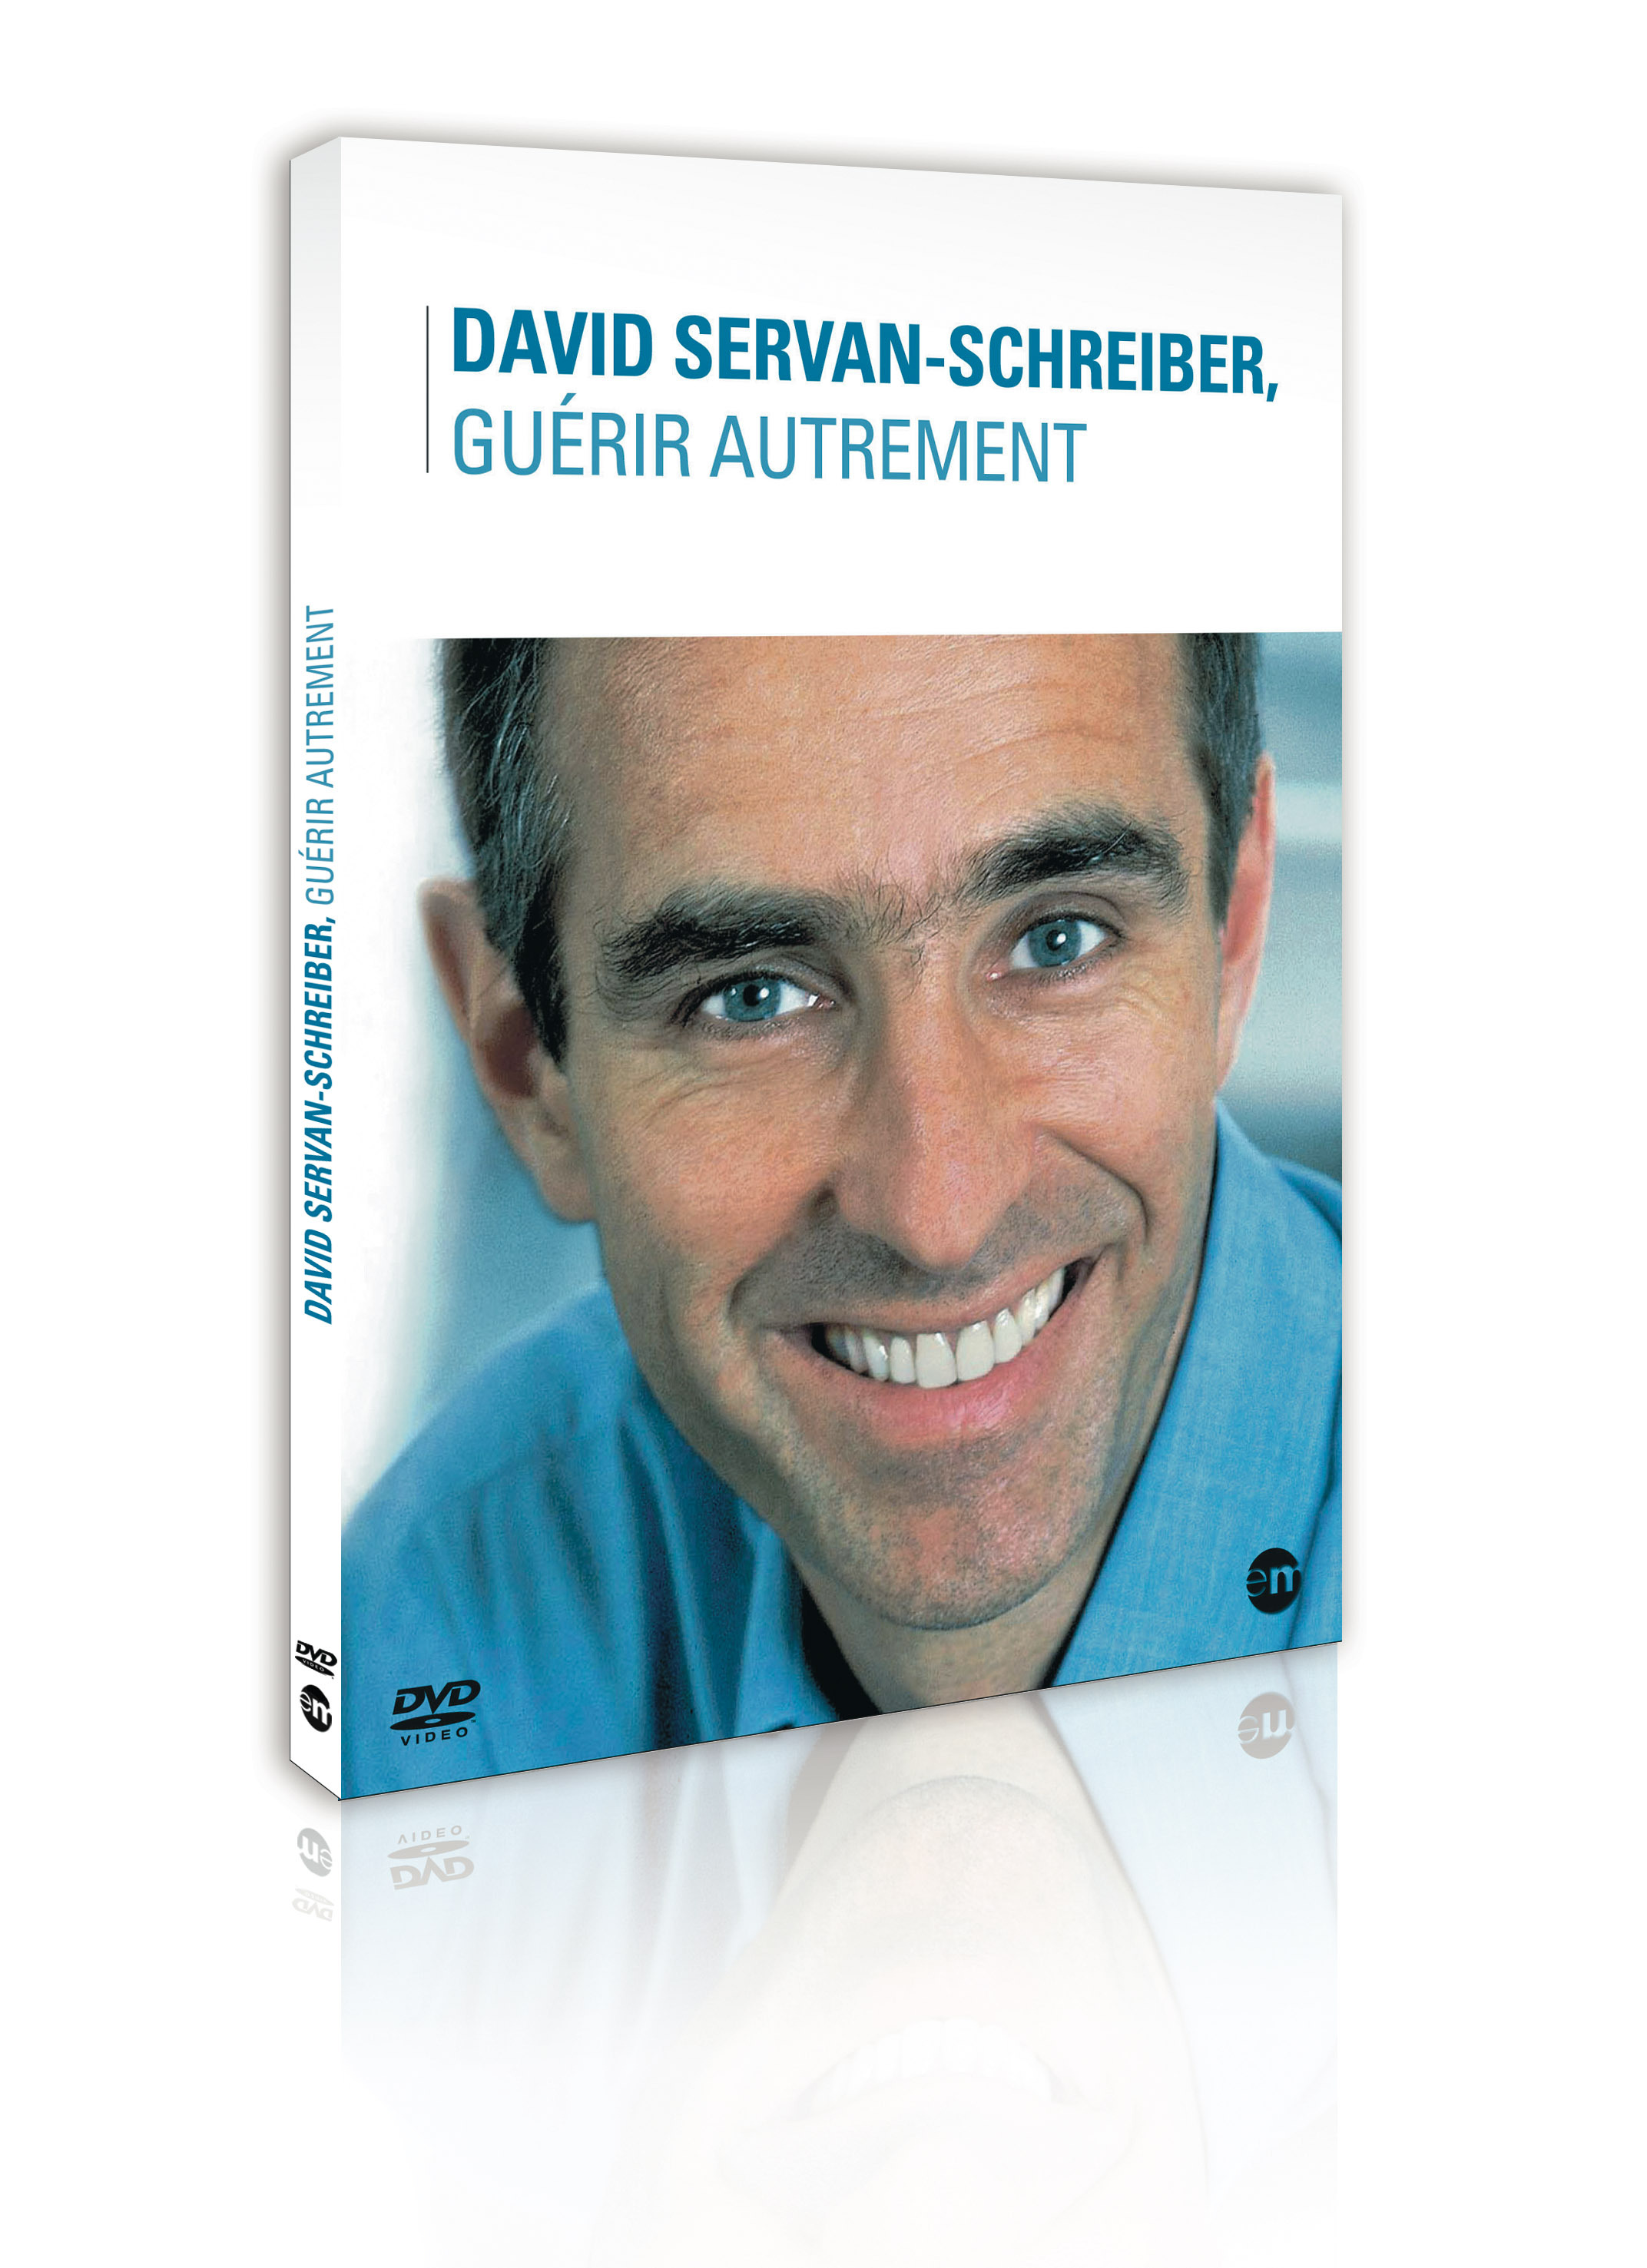 DAVID SERVAN-SHREIBER - DVD  GUERIR AUTREMENT